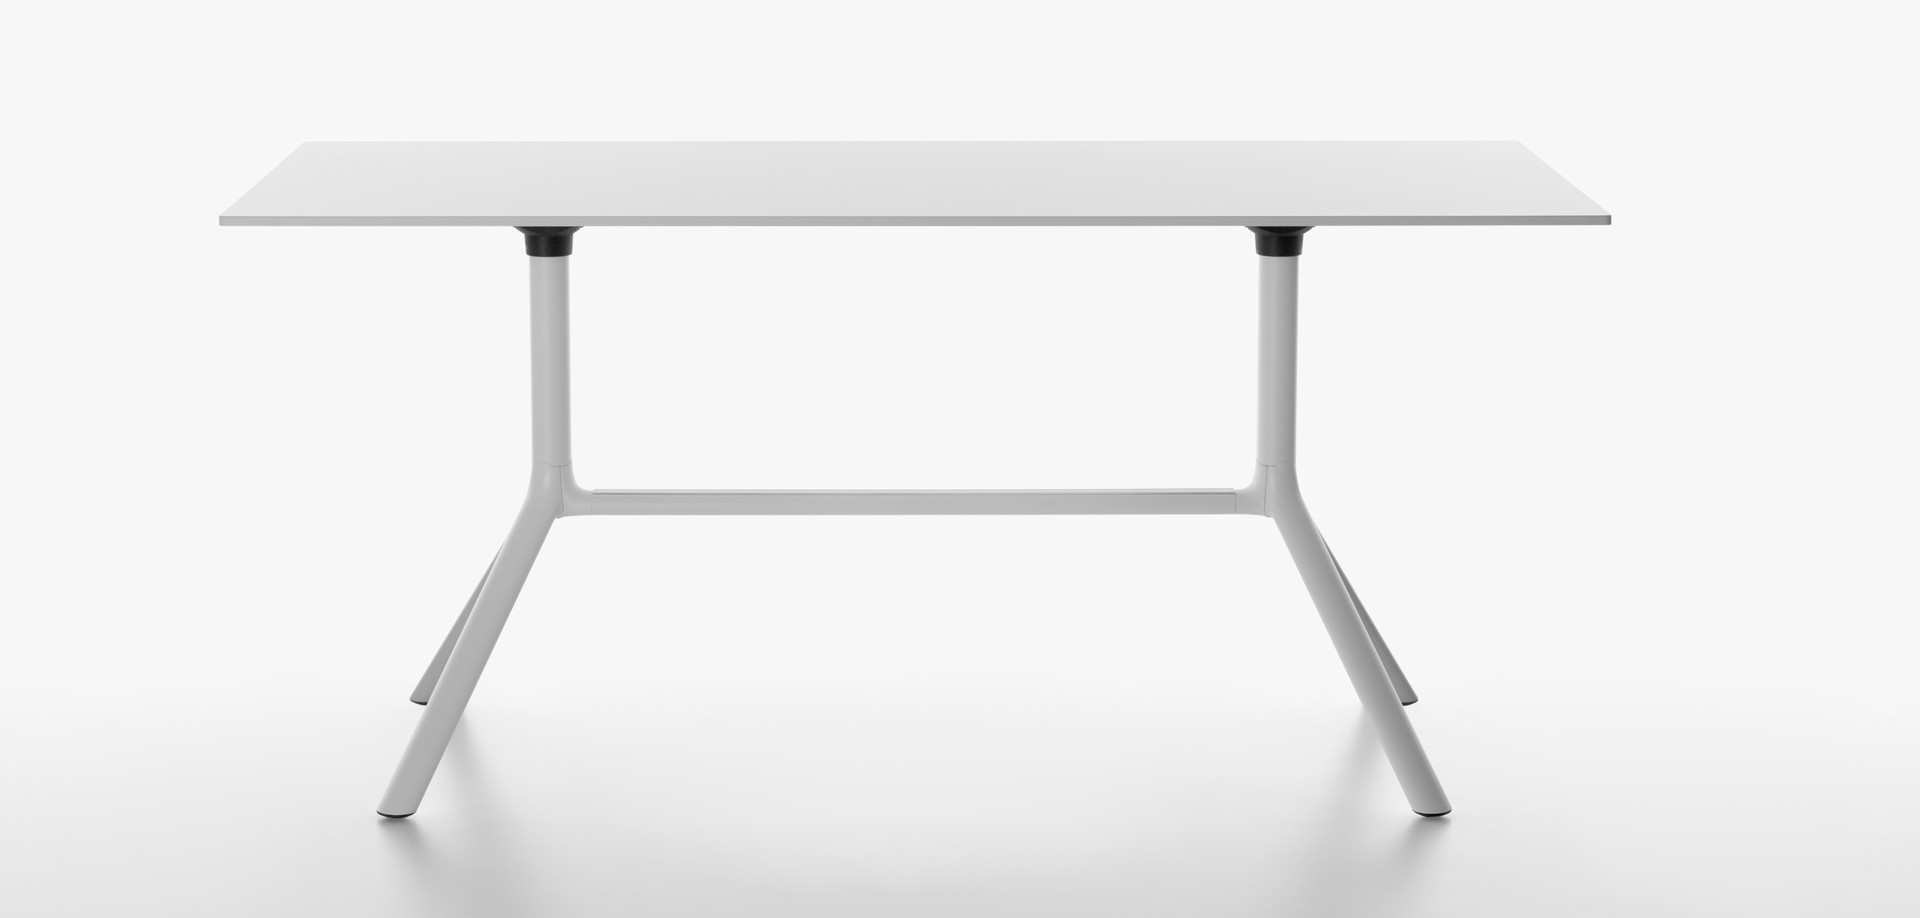 Plank - MIURA table rectangular table top, 73 cm high, white